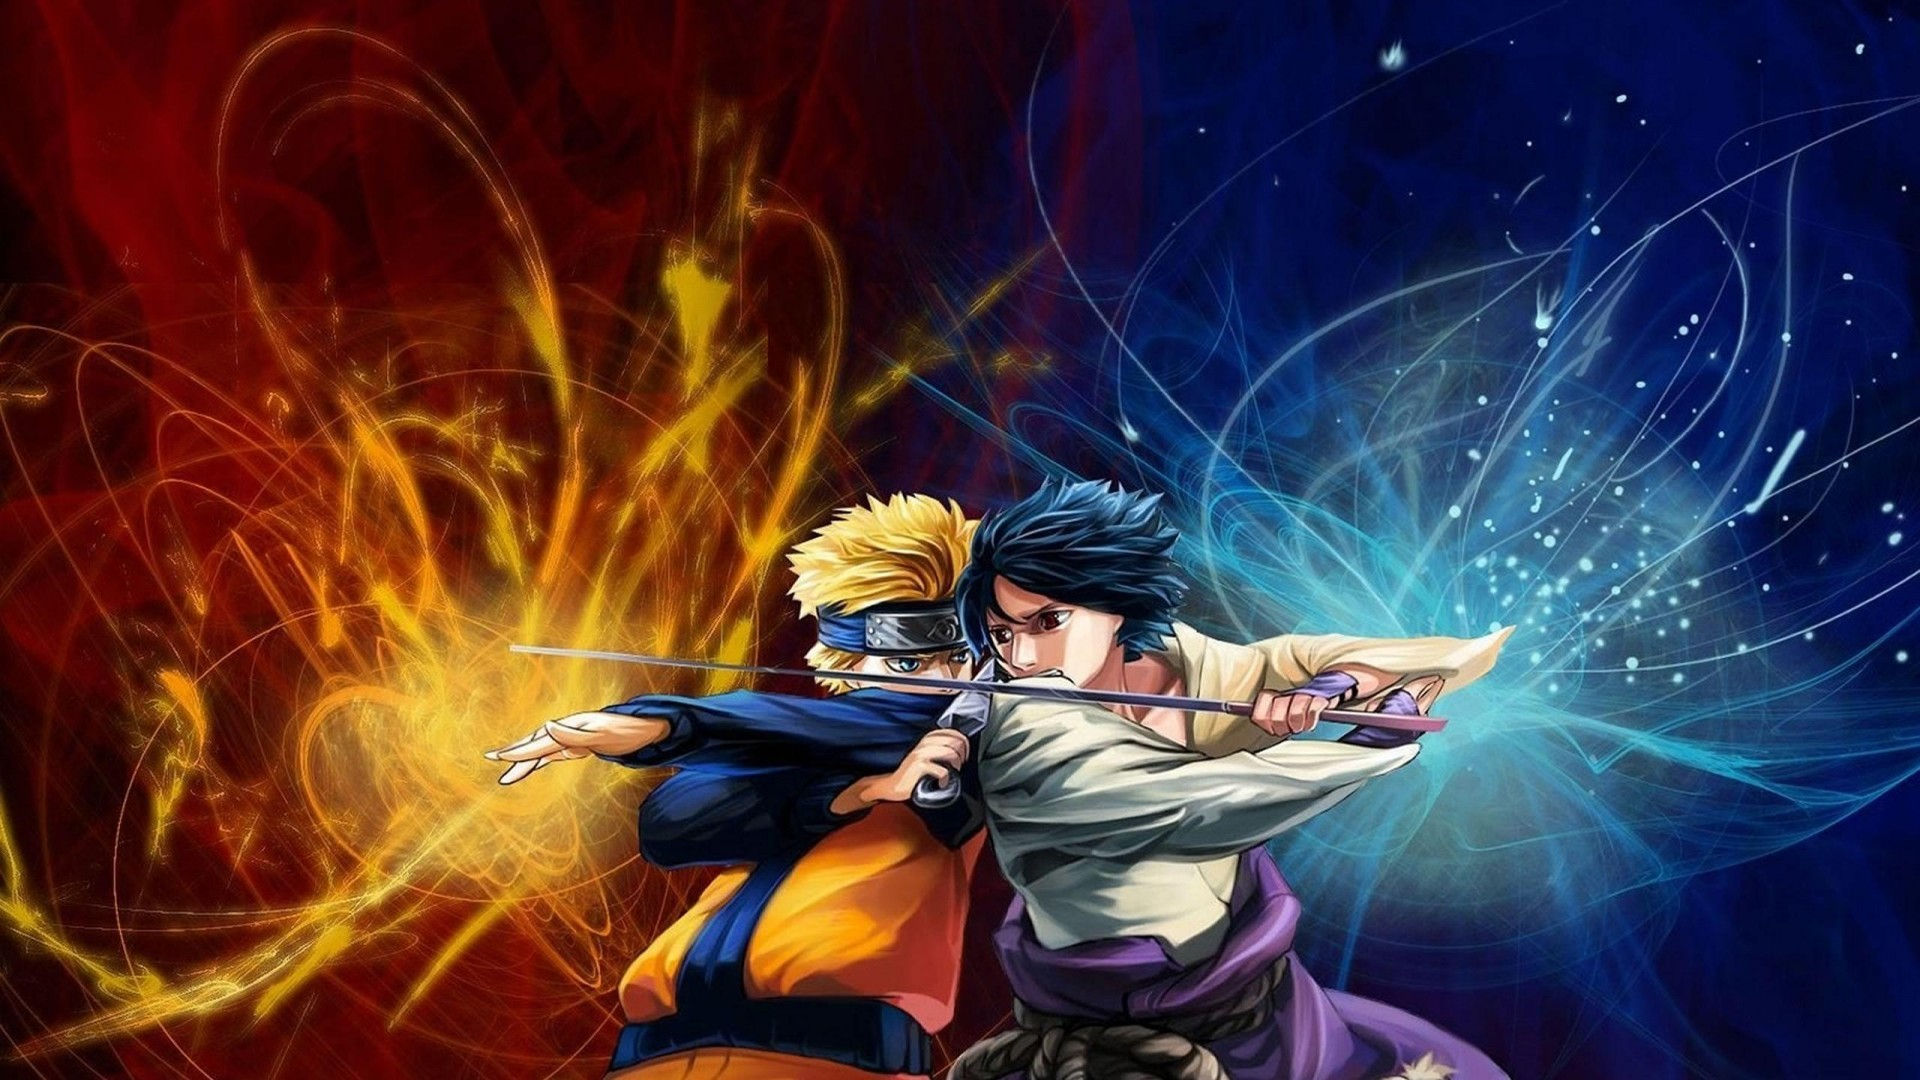 Naruto Wallpaper 13